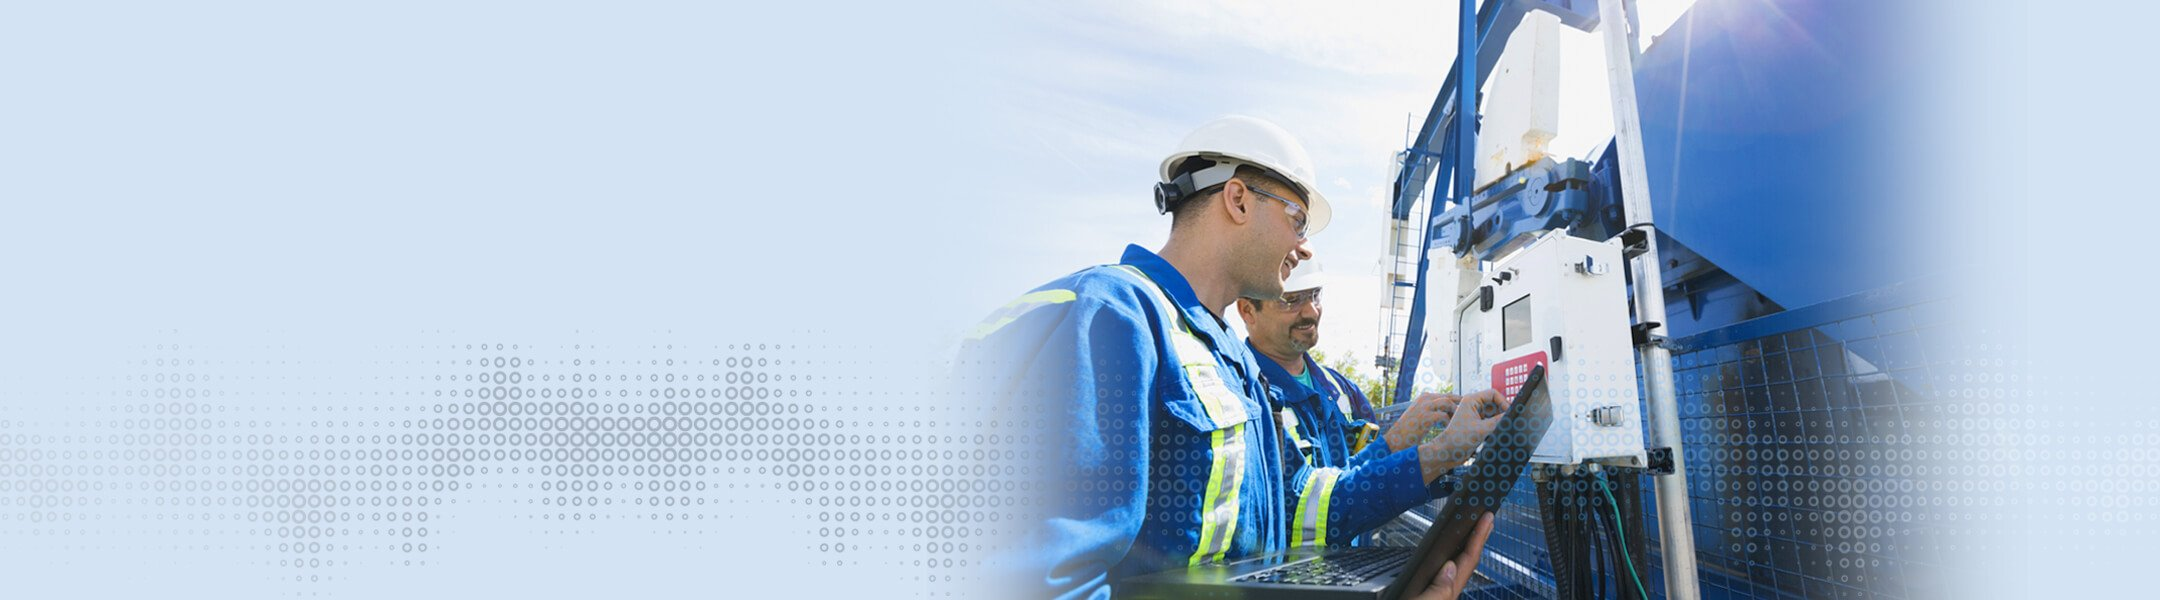 field-services-hero-customer-support-600x2160